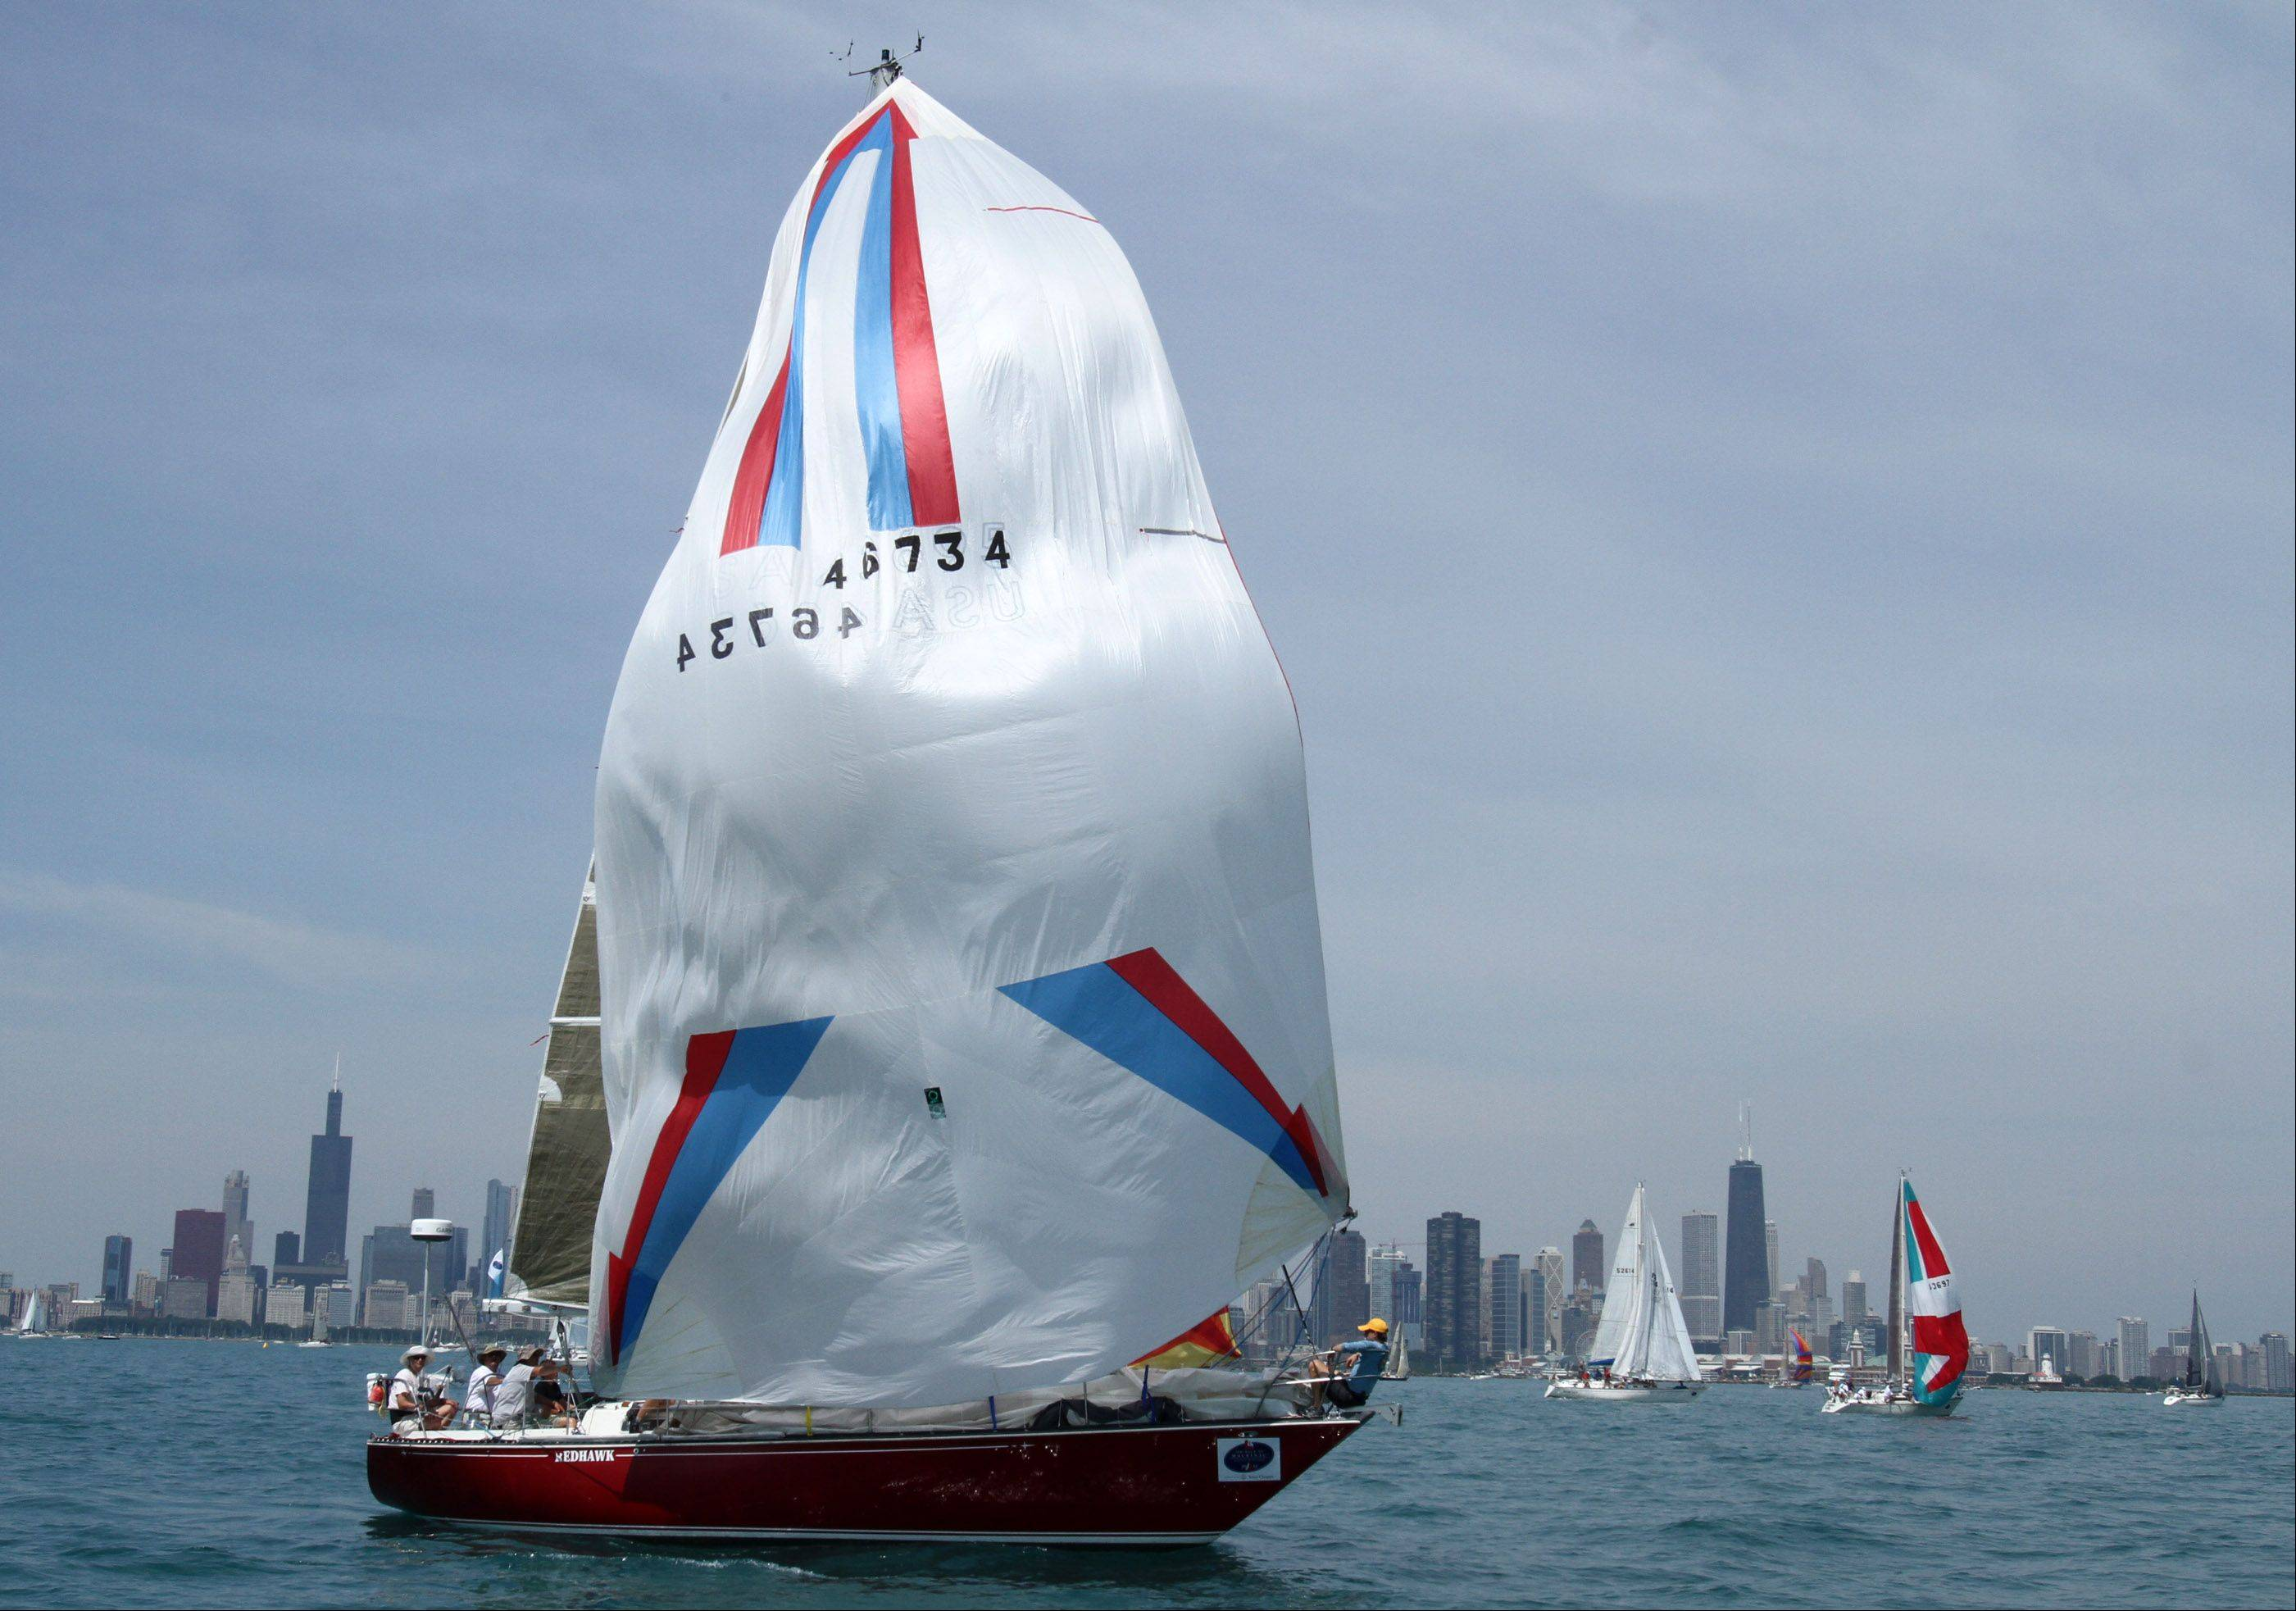 Redhawk owned by Mark Janda, of Bloomington, MN, with Wayzata Yacht Club gets a little wind in her sail at the start of the 104th Chicago Yacht Club Race to Mackinac on Lake Michigan of Chicago on Saturday, July 21.